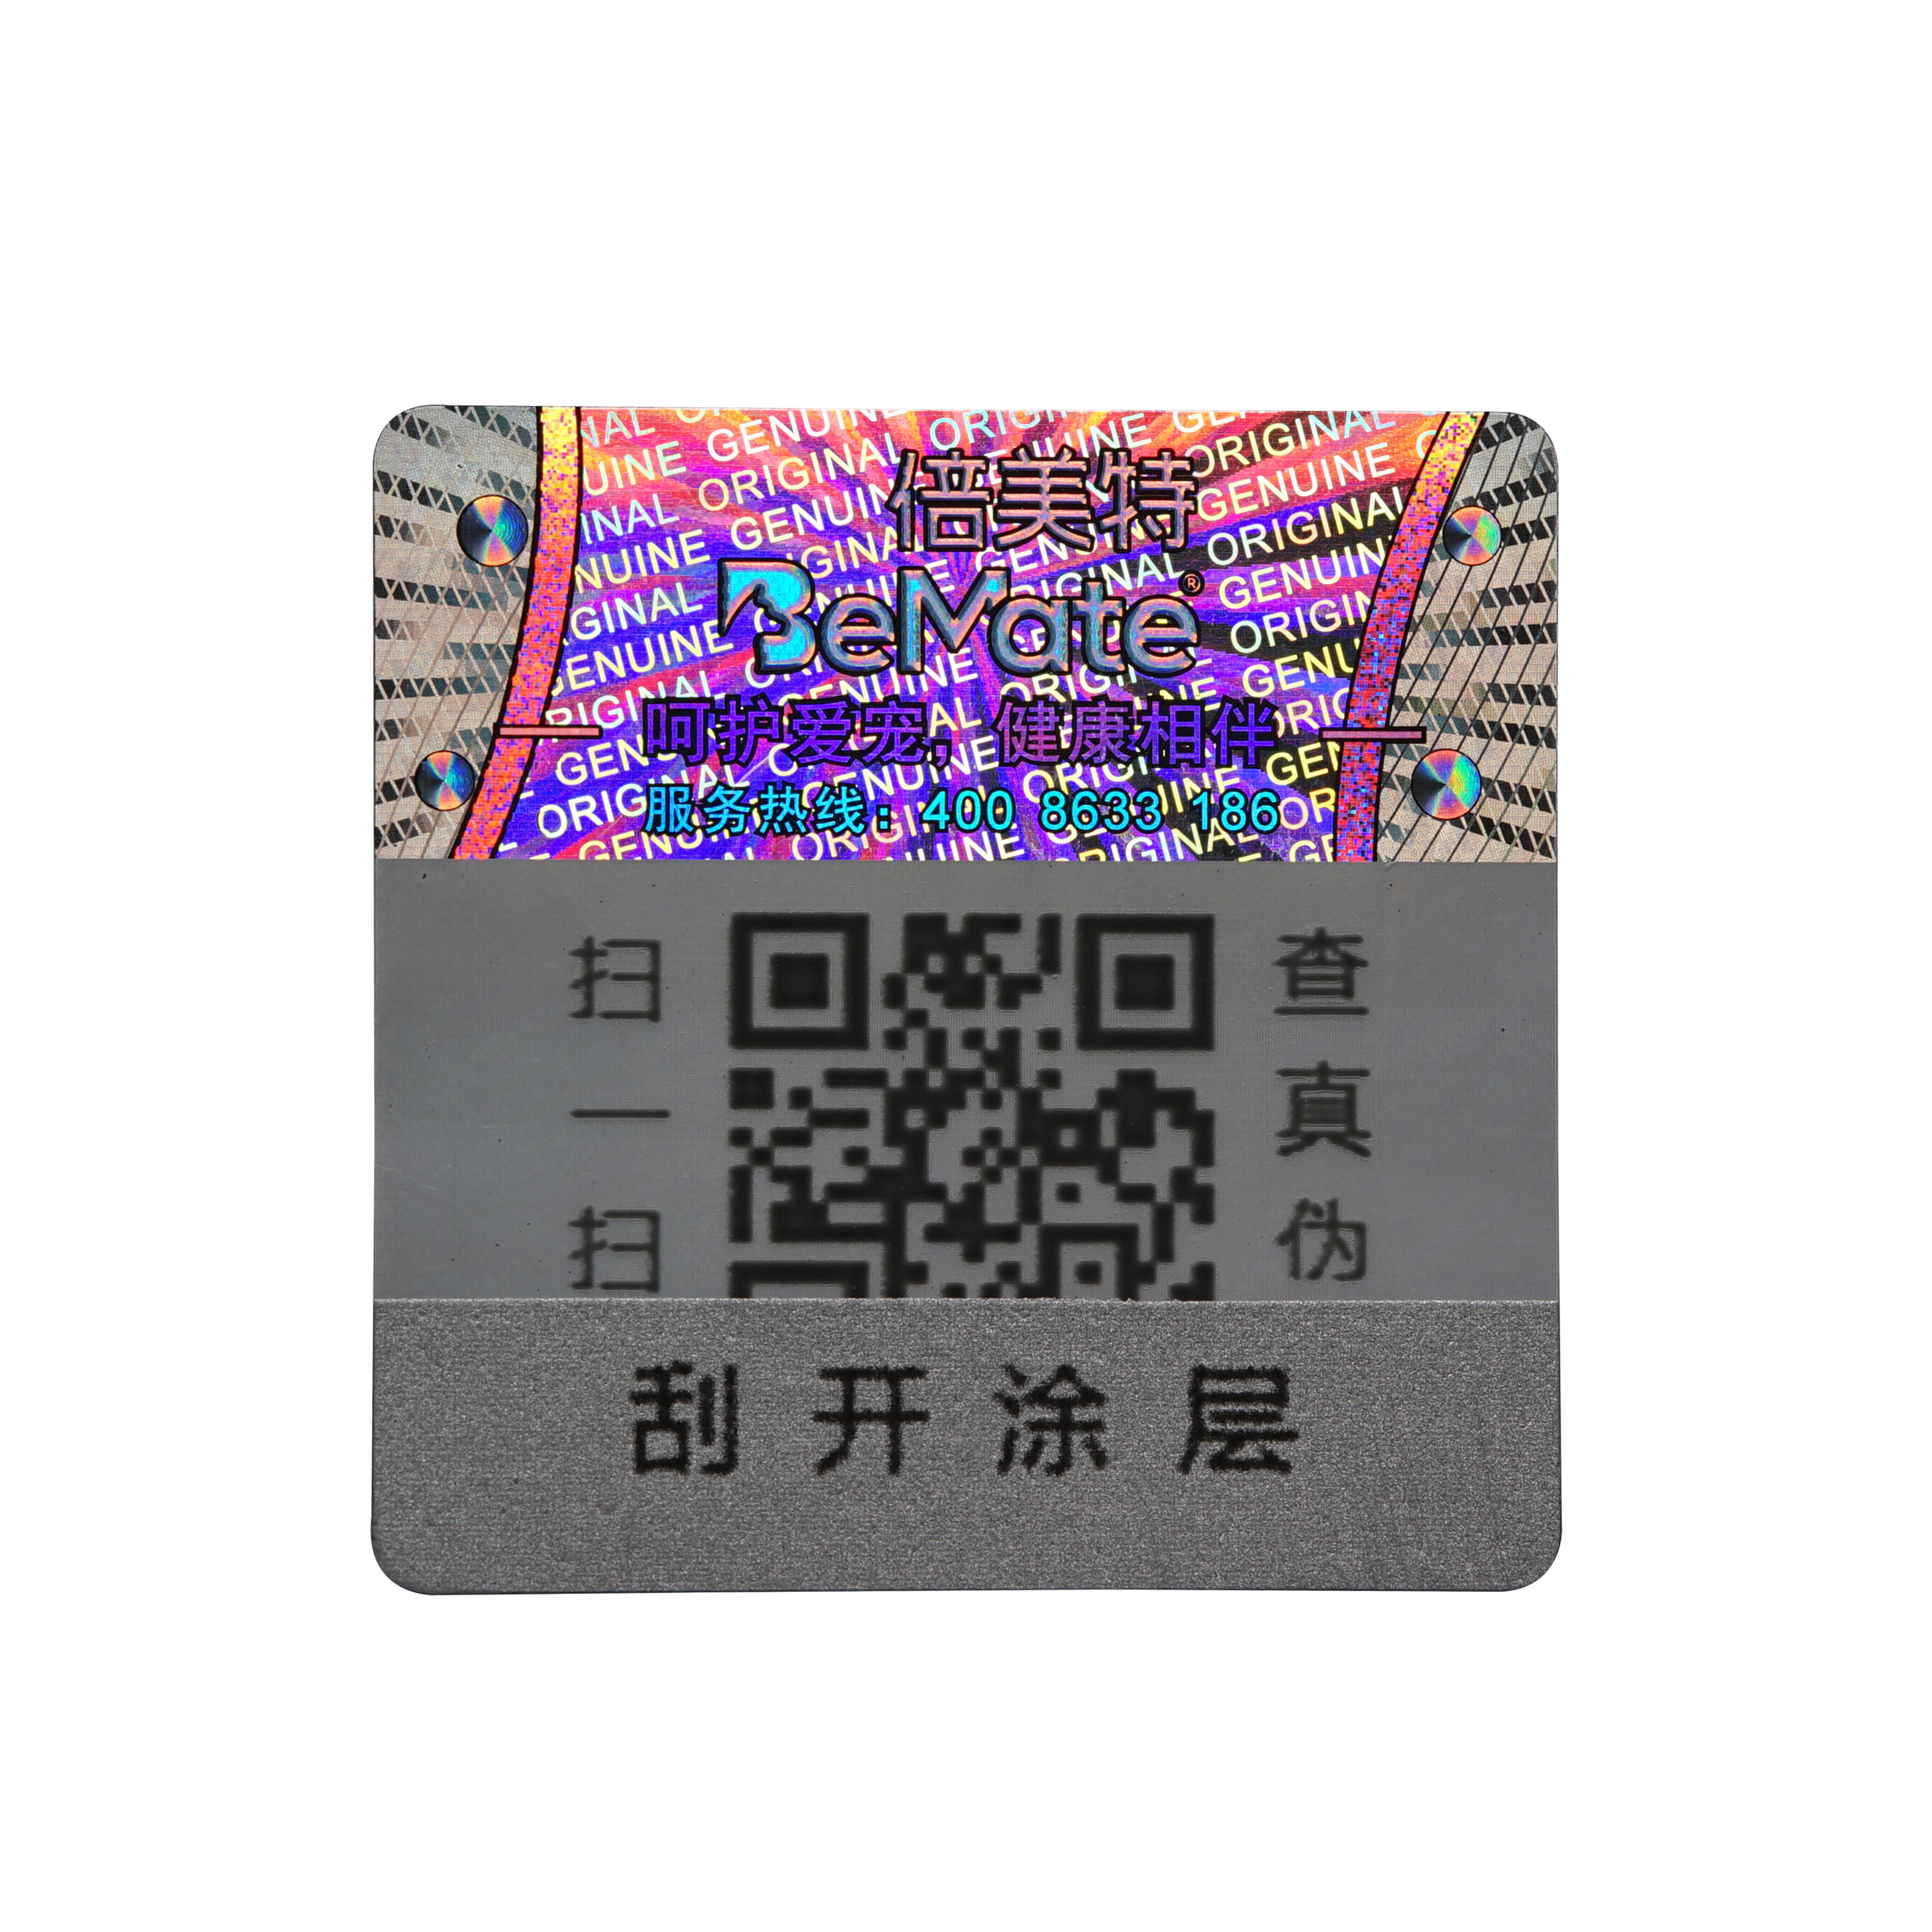 OEM 3d hologram reflective qr code scratch off personalized label authenticity sticker